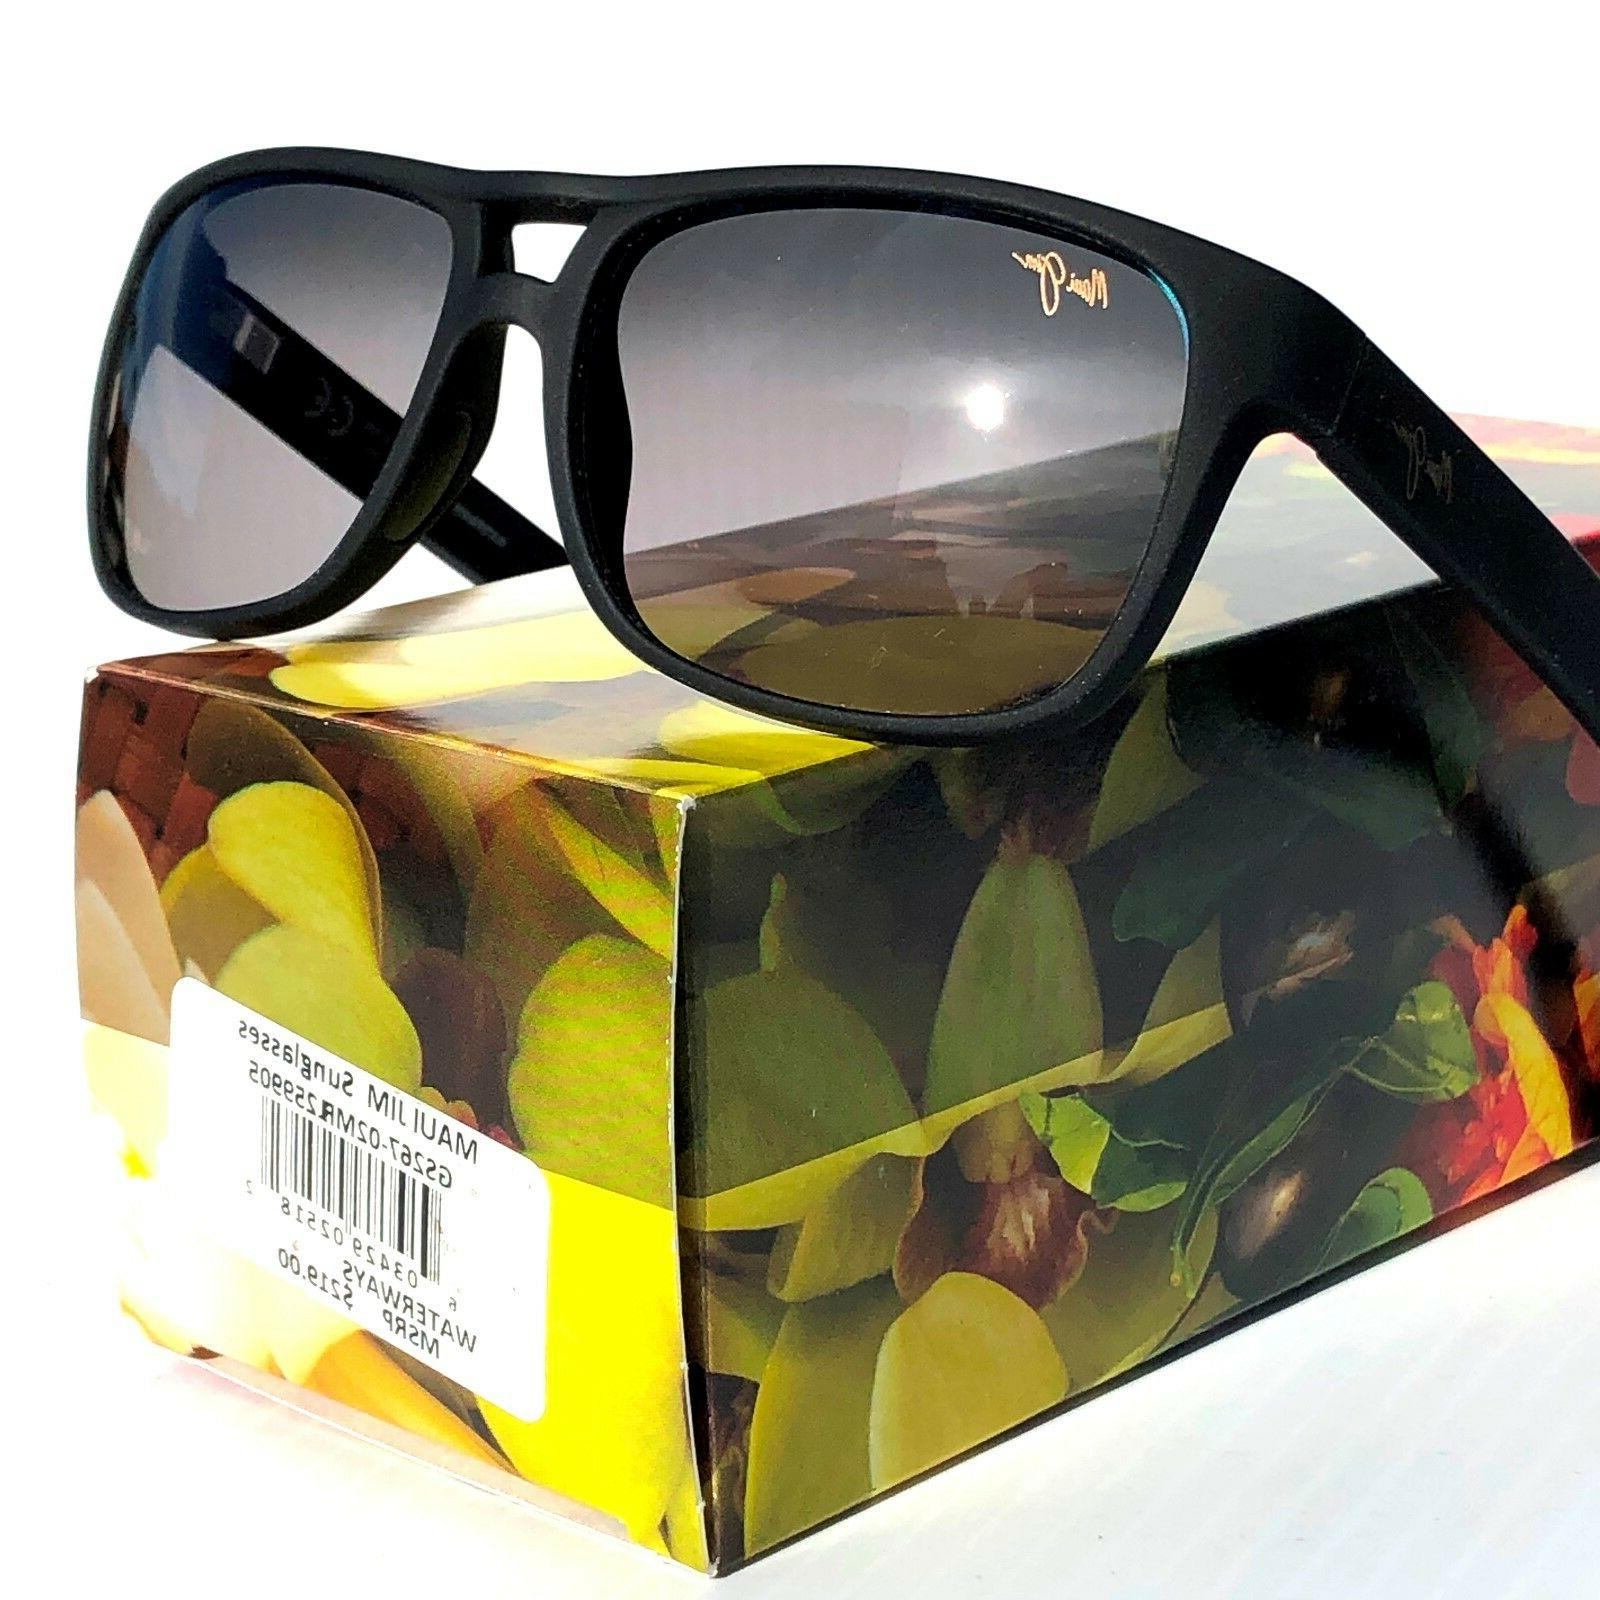 NEW* Jim Black Aviator Grey Sunglass